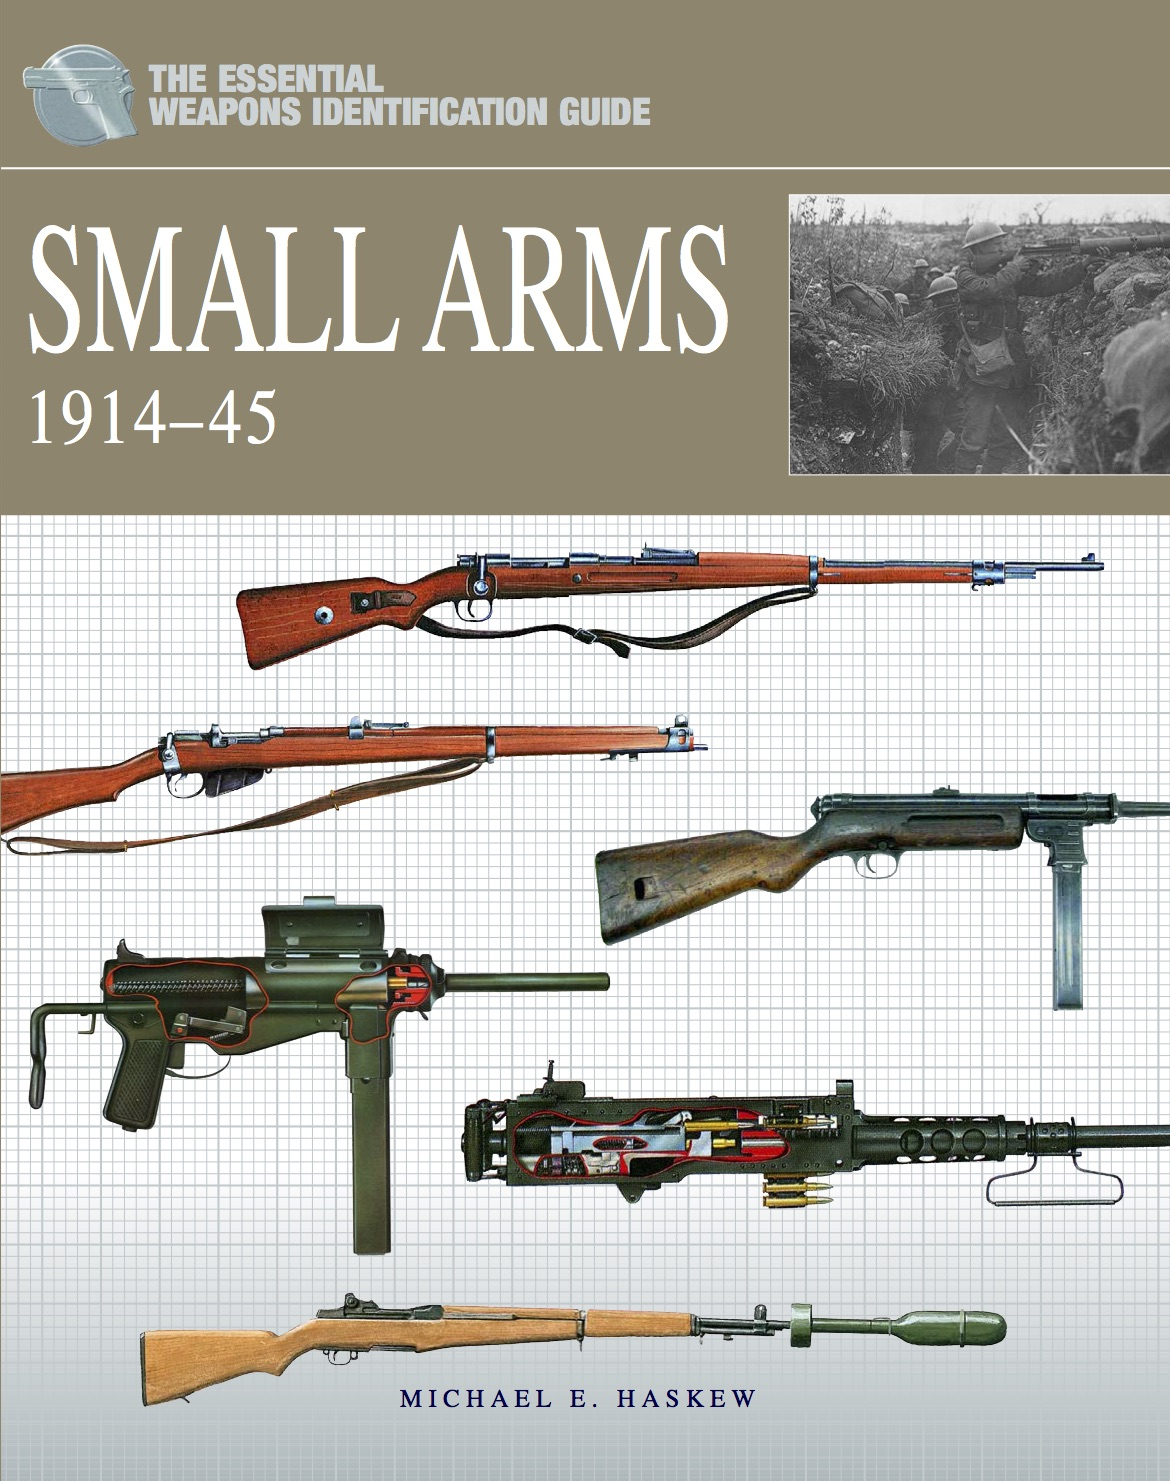 Small Arms 1914-1945: The Essential Weapons Identification Guide